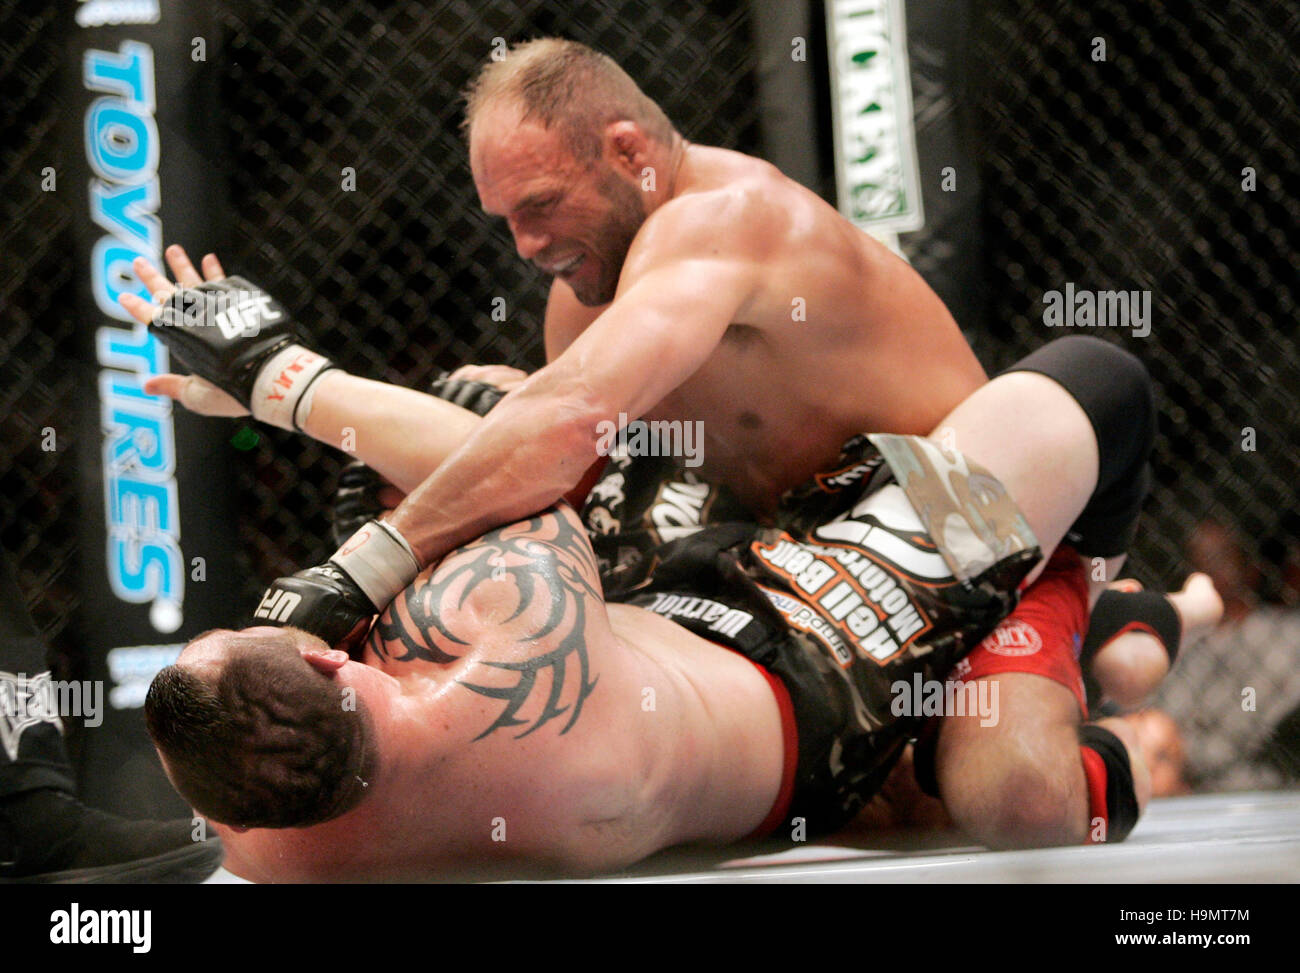 Randy Couture, top, fights Tim Sylvia during Ultimate Fighting Championship UFC 68 at the Nationwide Arena in Columbus, Stock Photo